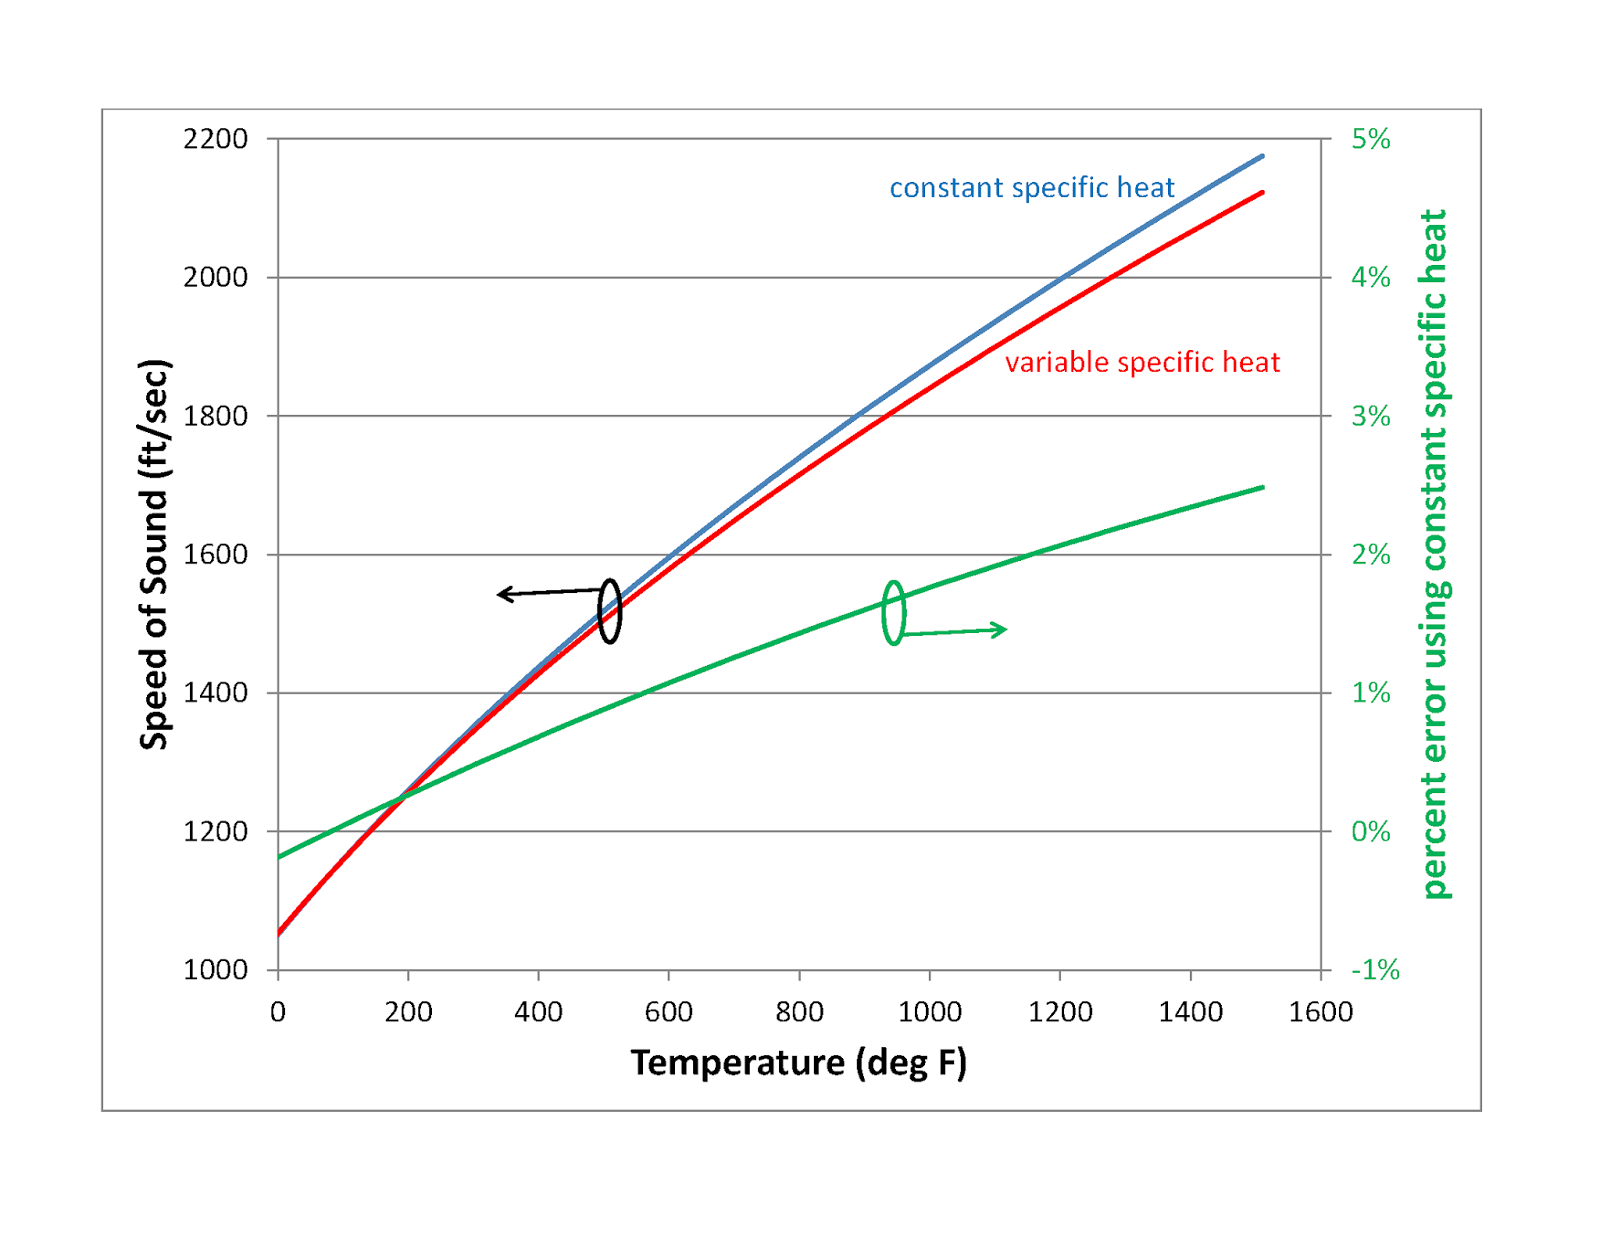 Heat Transfer and Applied Thermodynamics: Specific Heat Ratio